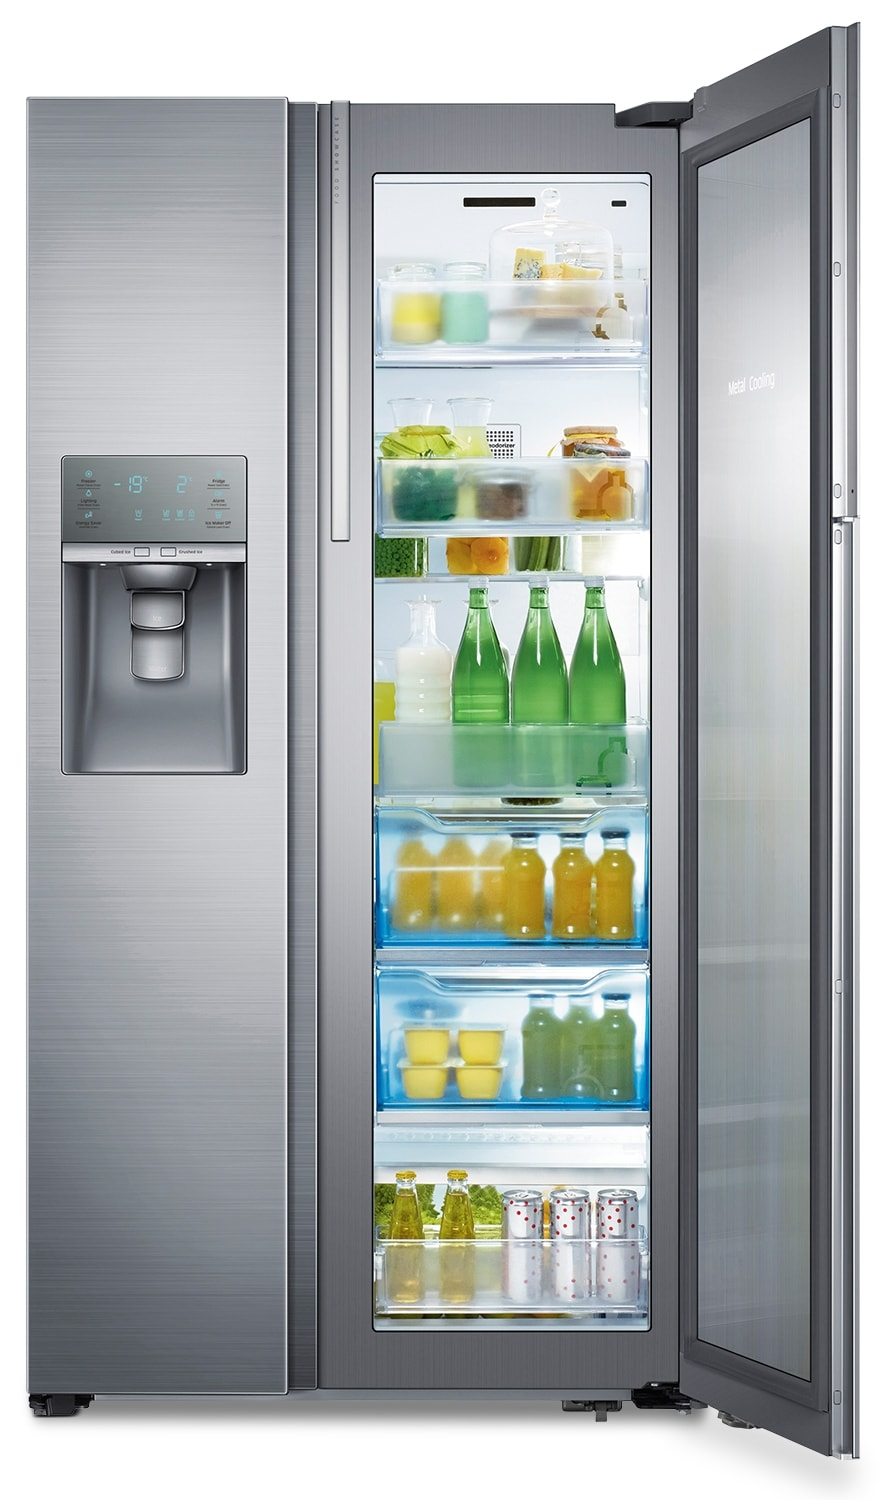 Samsung 21.5 Cu. Ft Side-by-Side Food Showcase Refrigerator – Stainless Steel